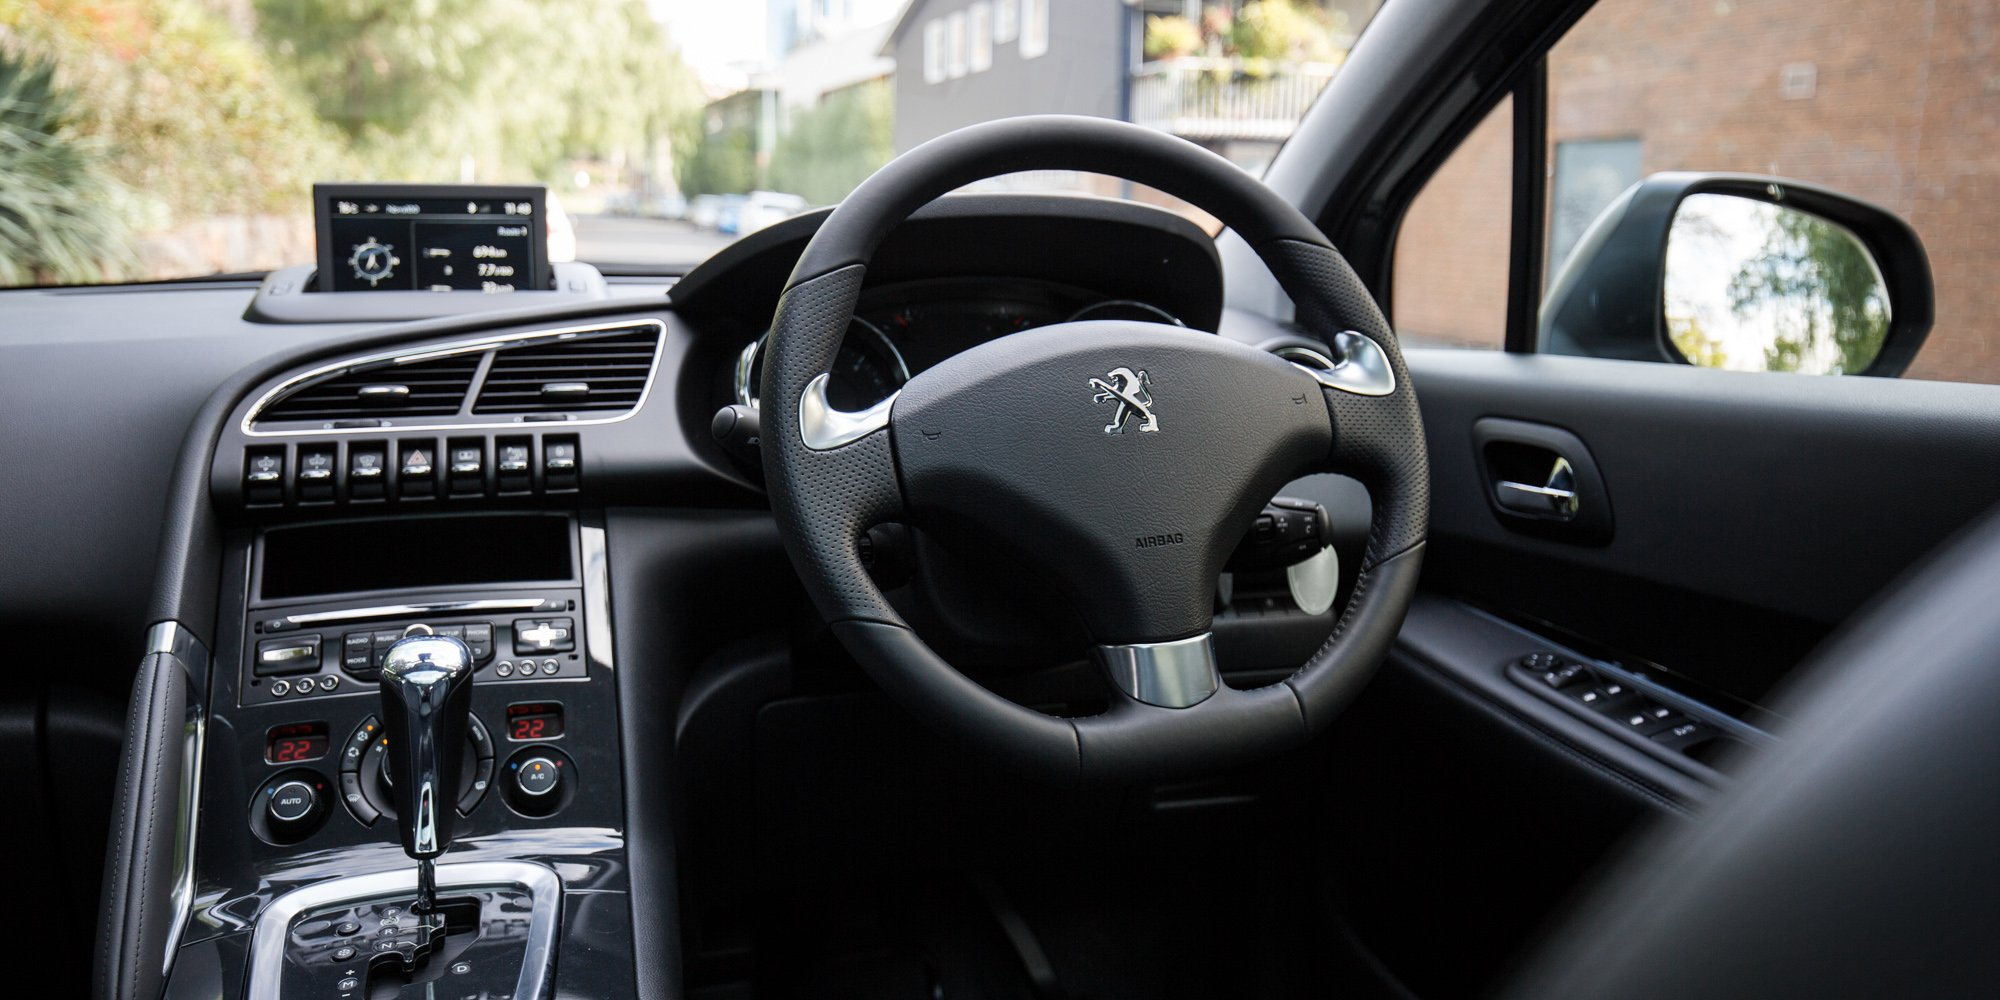 Peugeot 3008 Review: Active 2.0 HDi - Photos